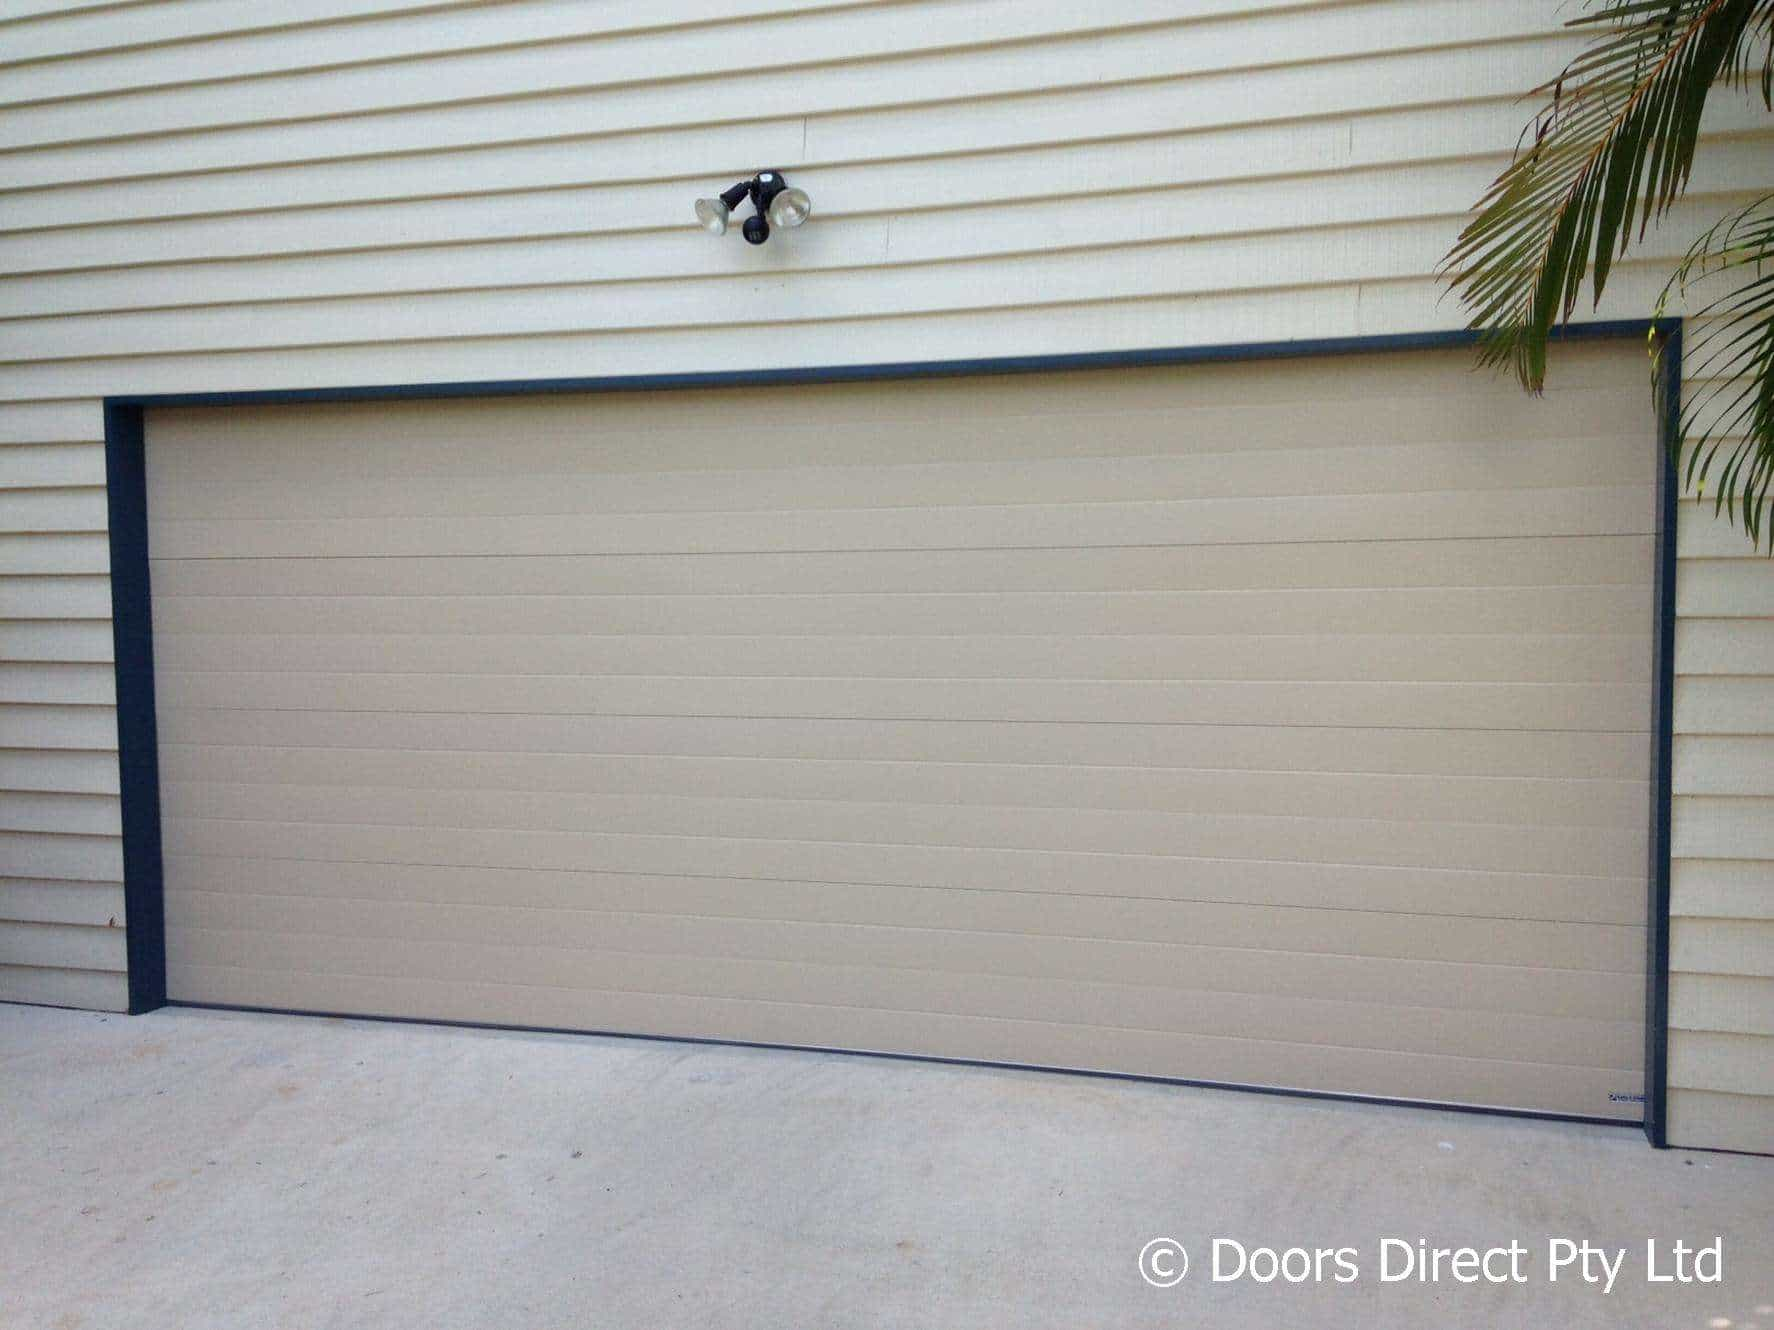 1330 #5D4E34 Sectional Garage Door Motors Brisbane Doors Direct image Overhead Doors Direct 38431774